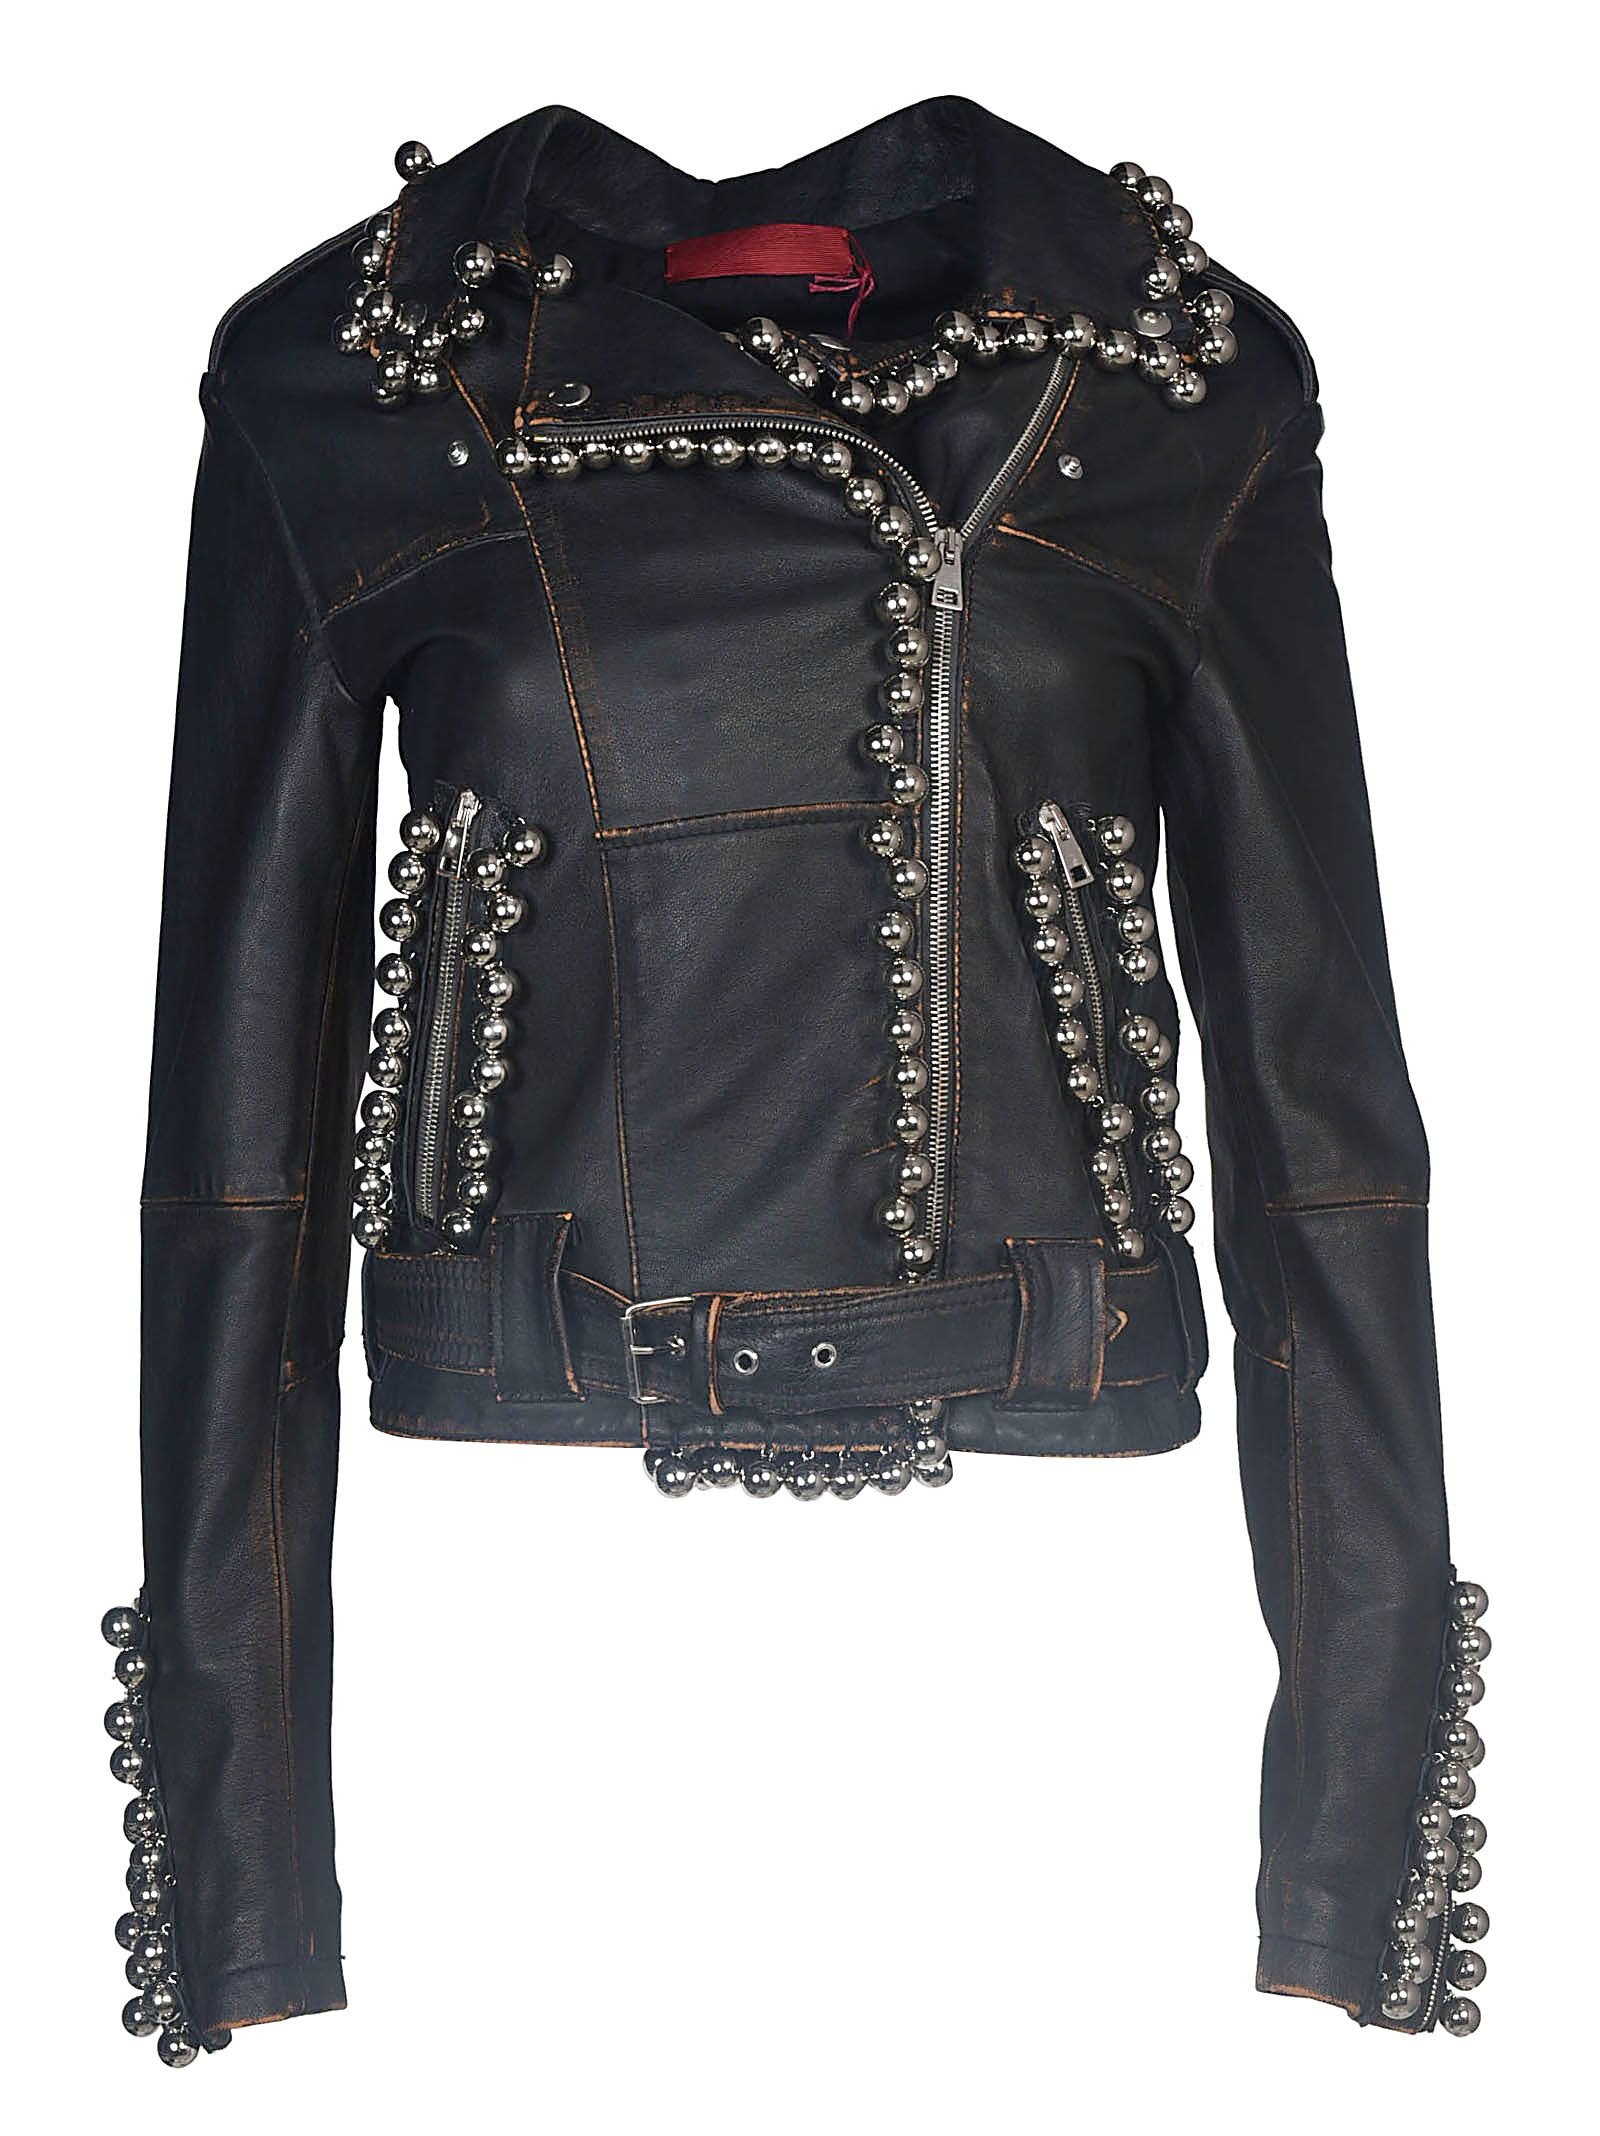 sphere embellished biker jakcet - Black Di Liborio Outlet For Cheap Comfortable Free Shipping 2018 Unisex Free Shipping Prices yLVFkD